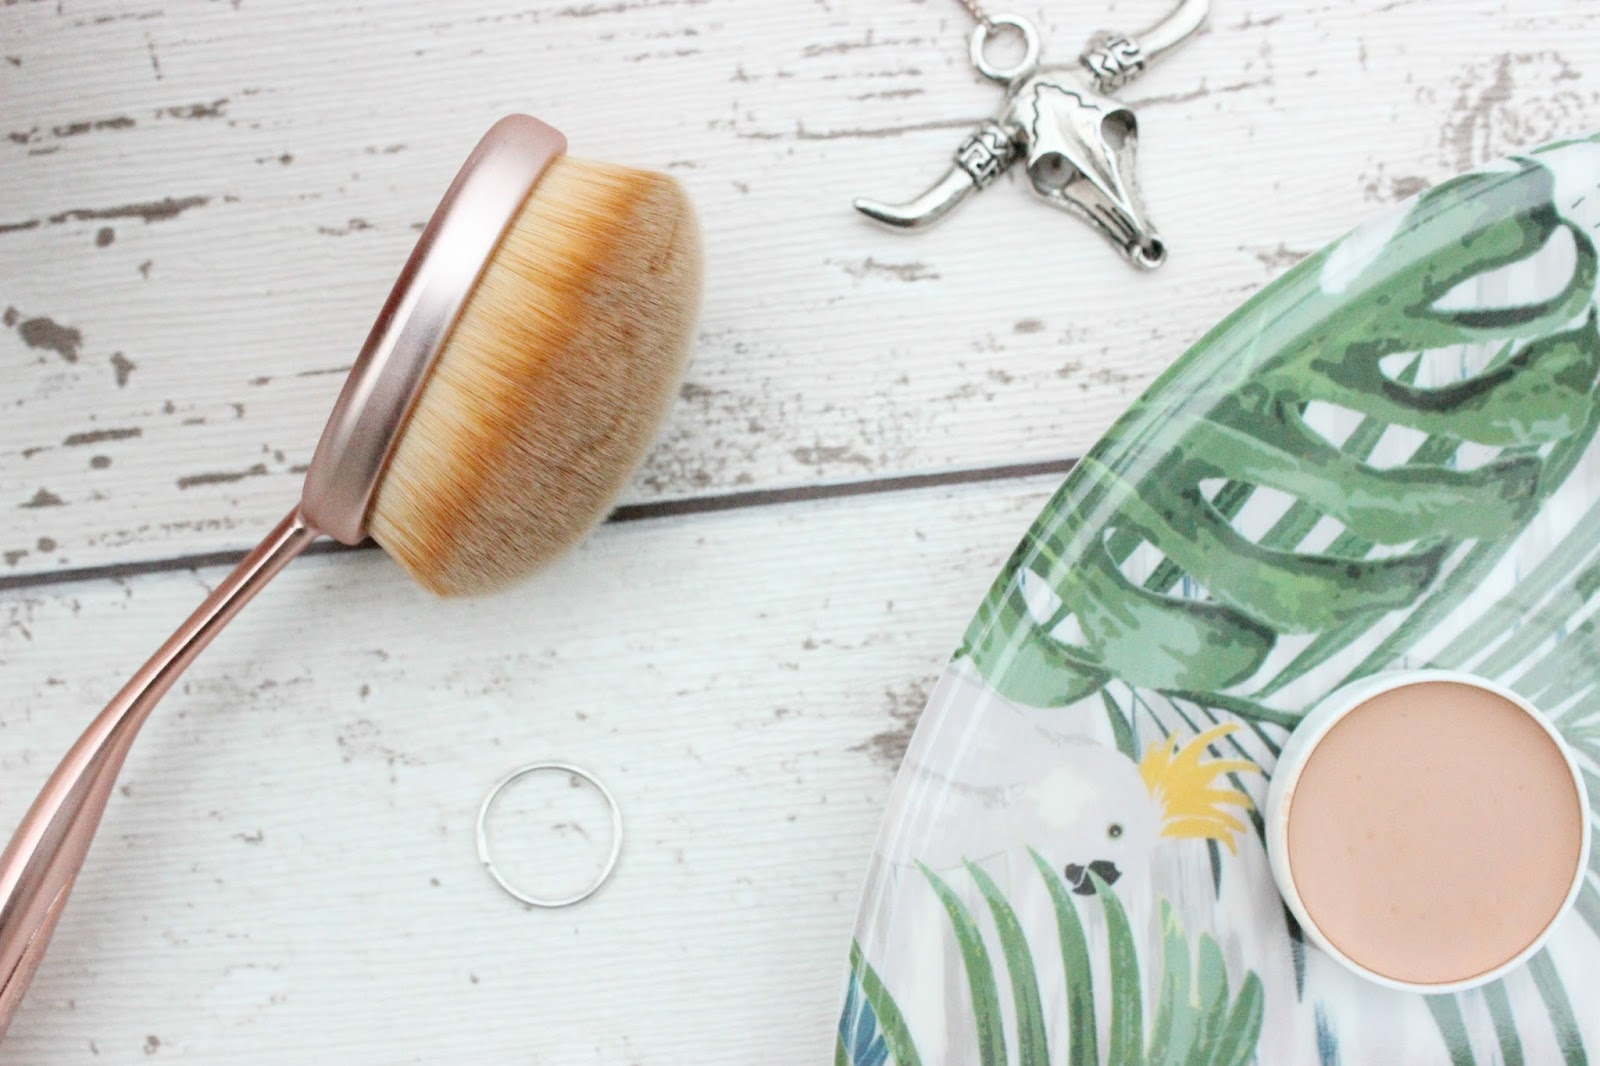 Contouring Oval Brush by precision #17